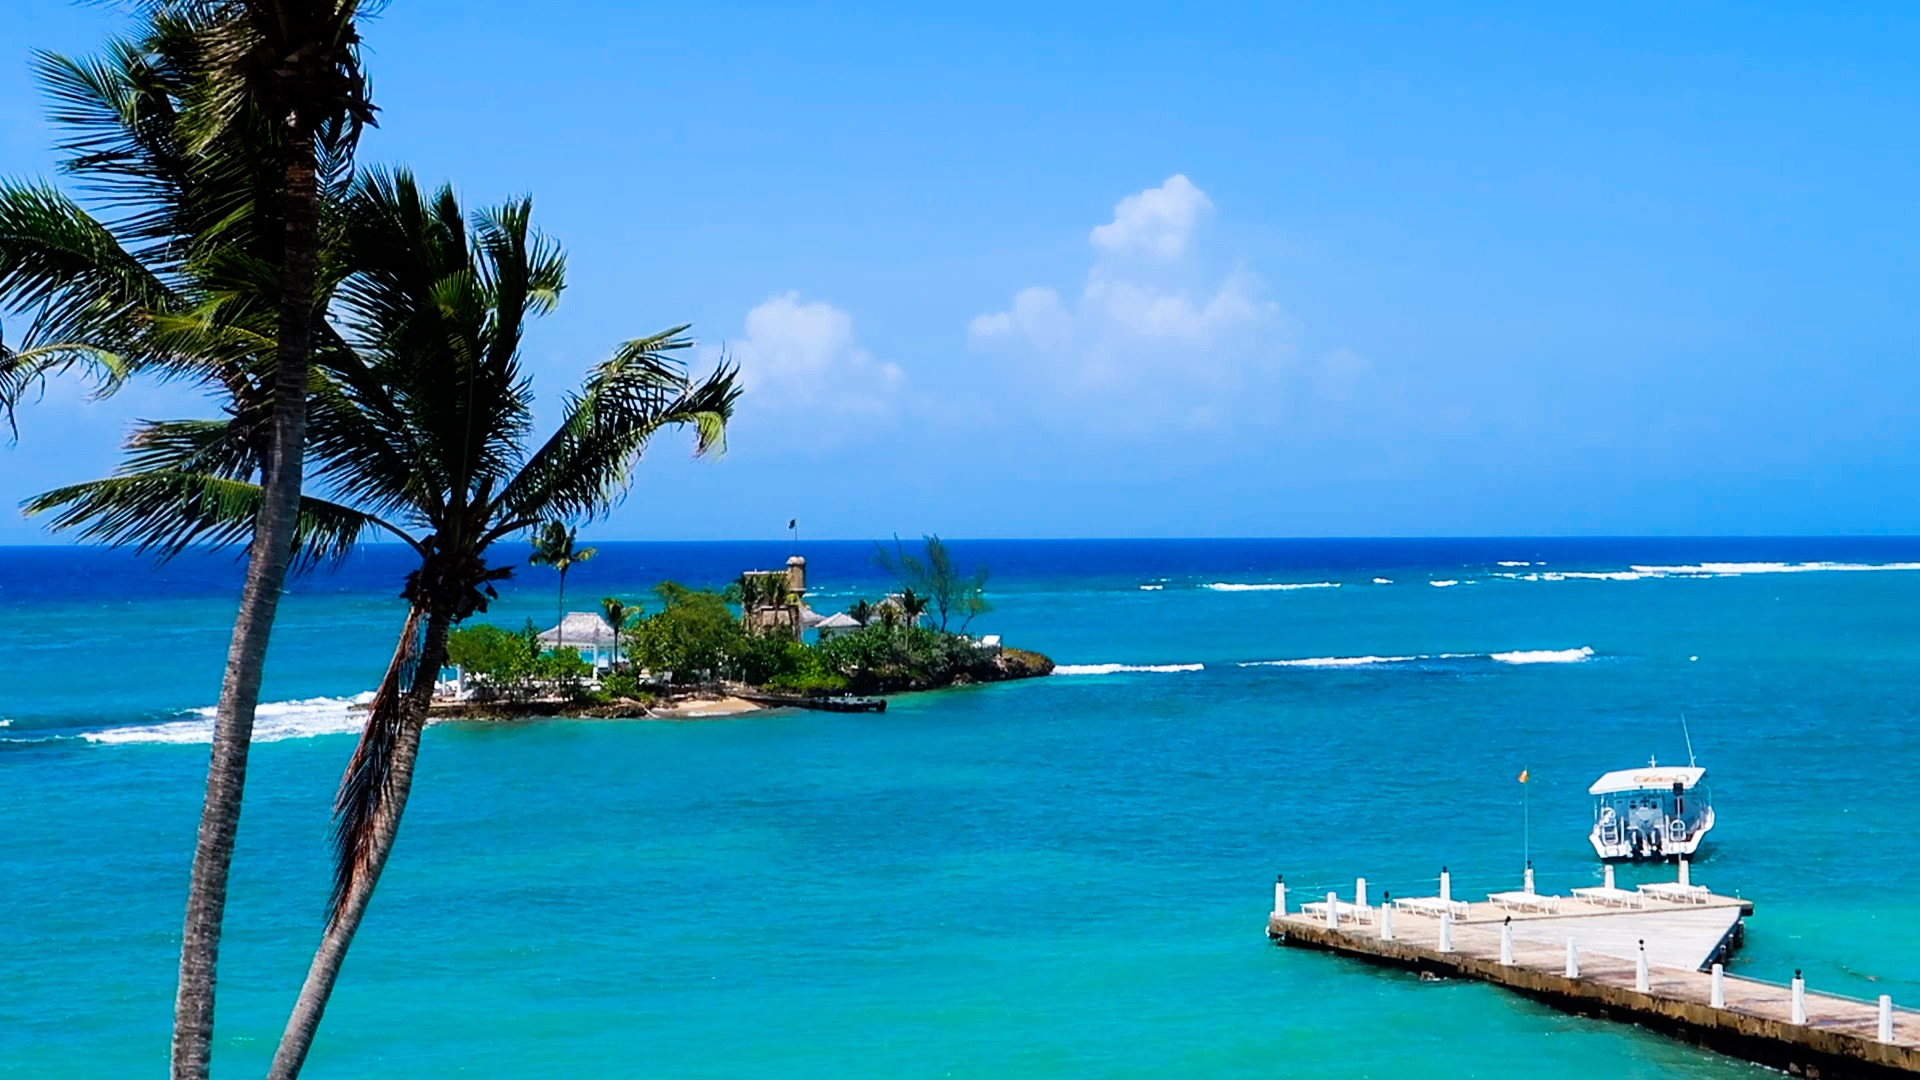 touring Couples Tower Isle in Ocho Rios, Jamaica.mp4 - YouTube